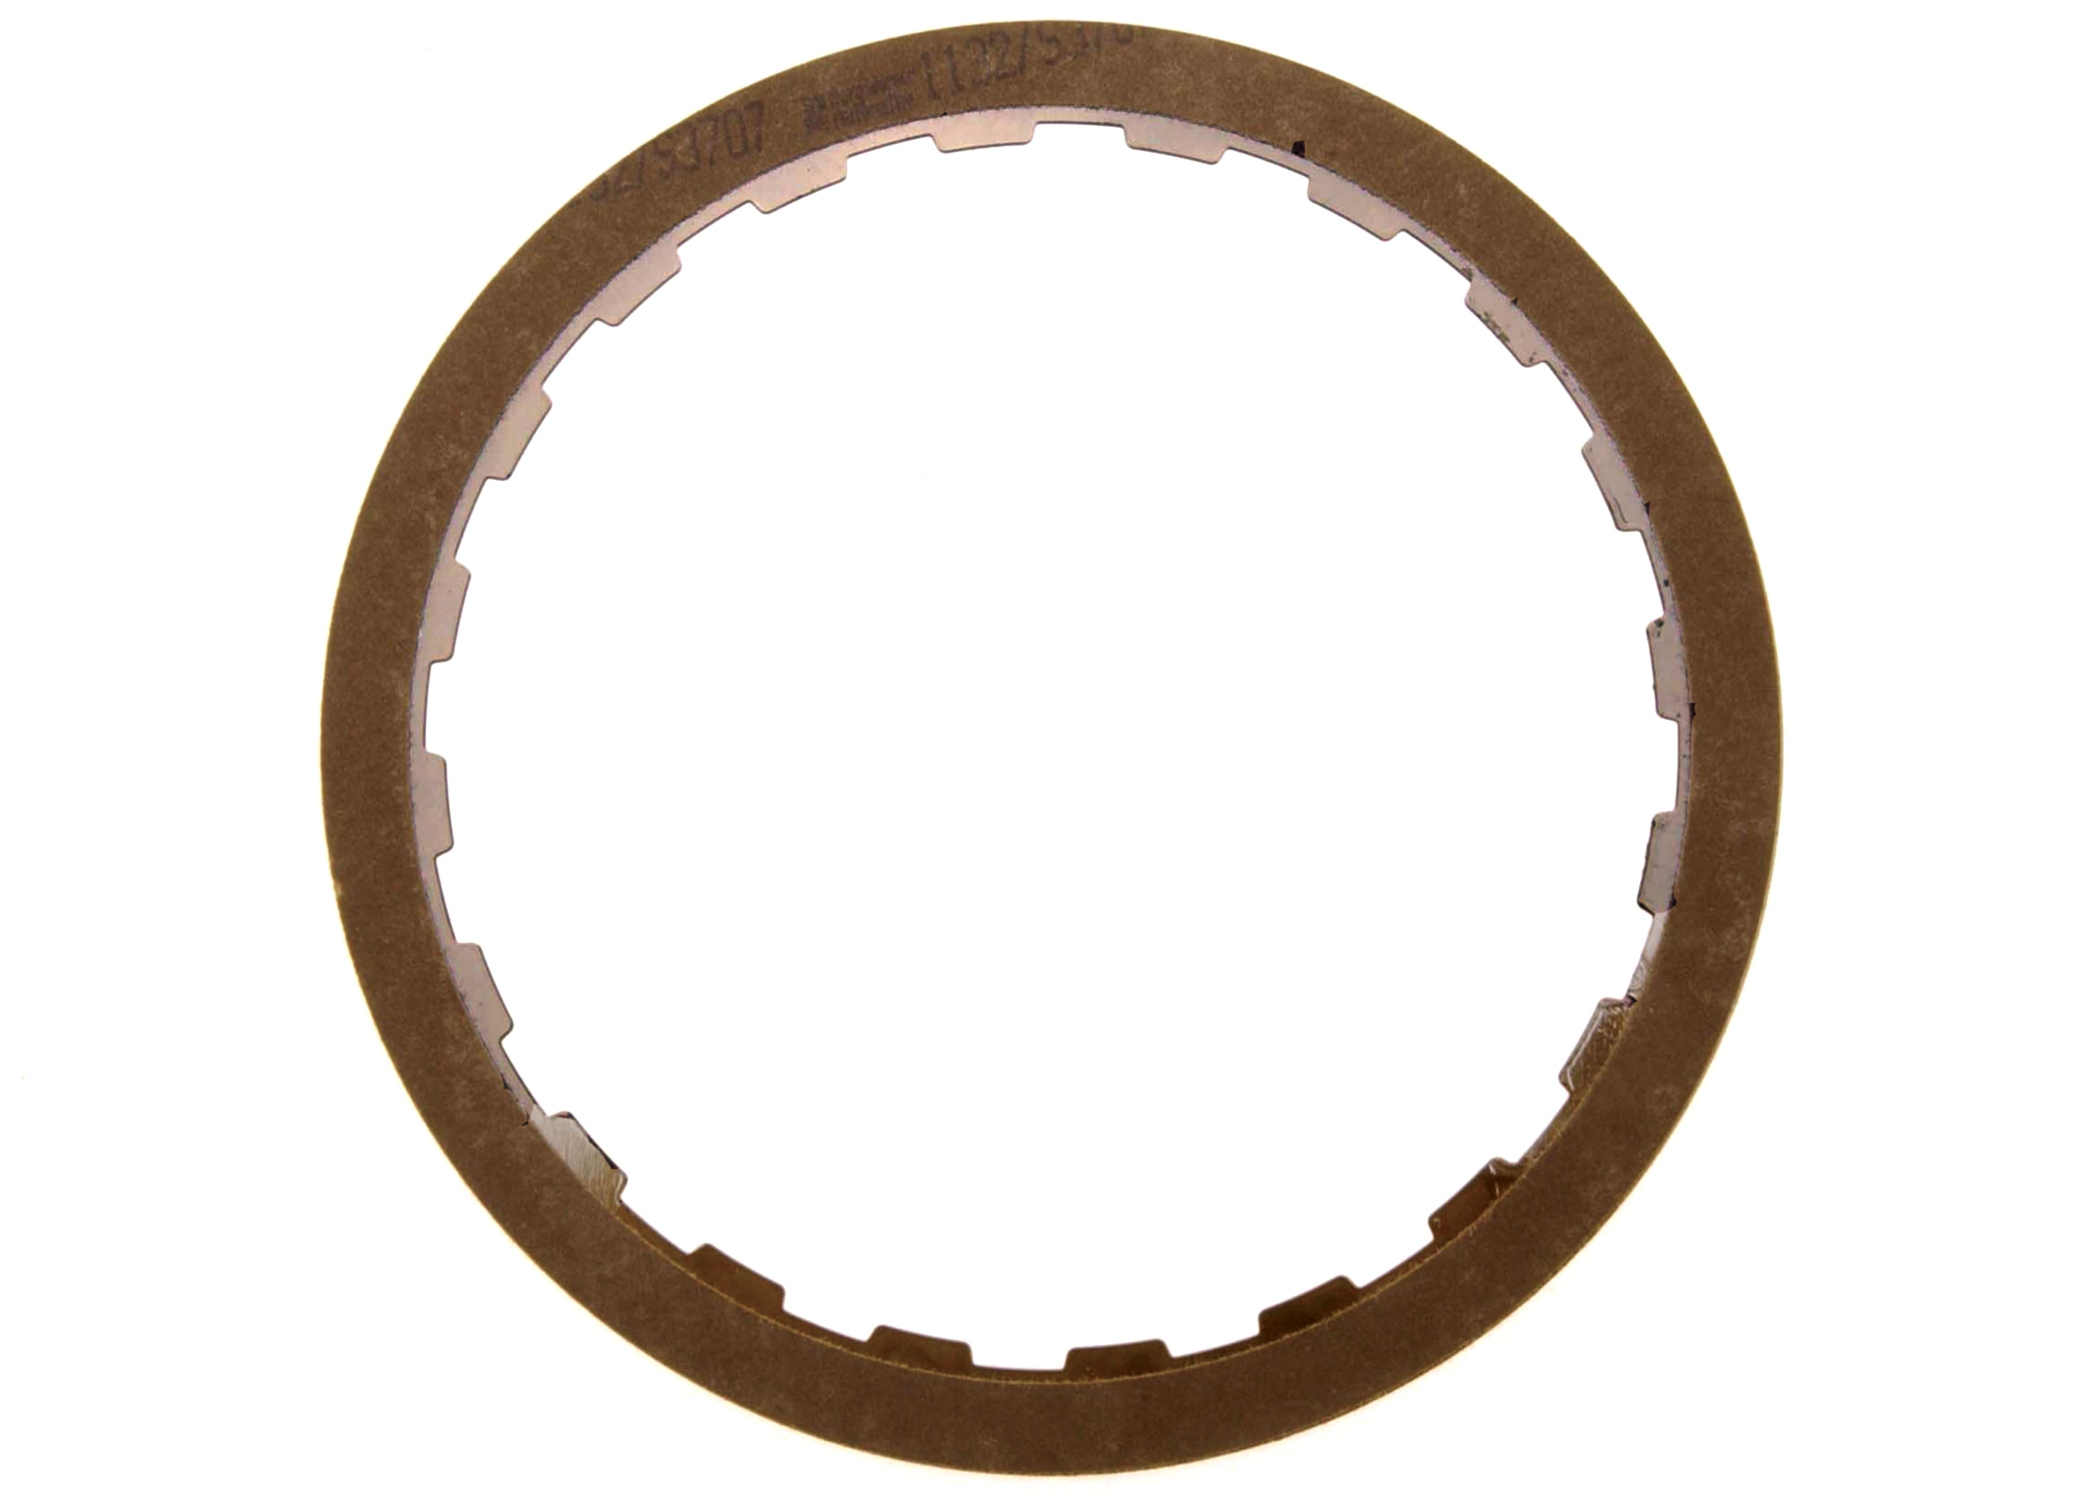 ACDELCO GM ORIGINAL EQUIPMENT - Transmission Clutch Friction Plate - DCB 24201132